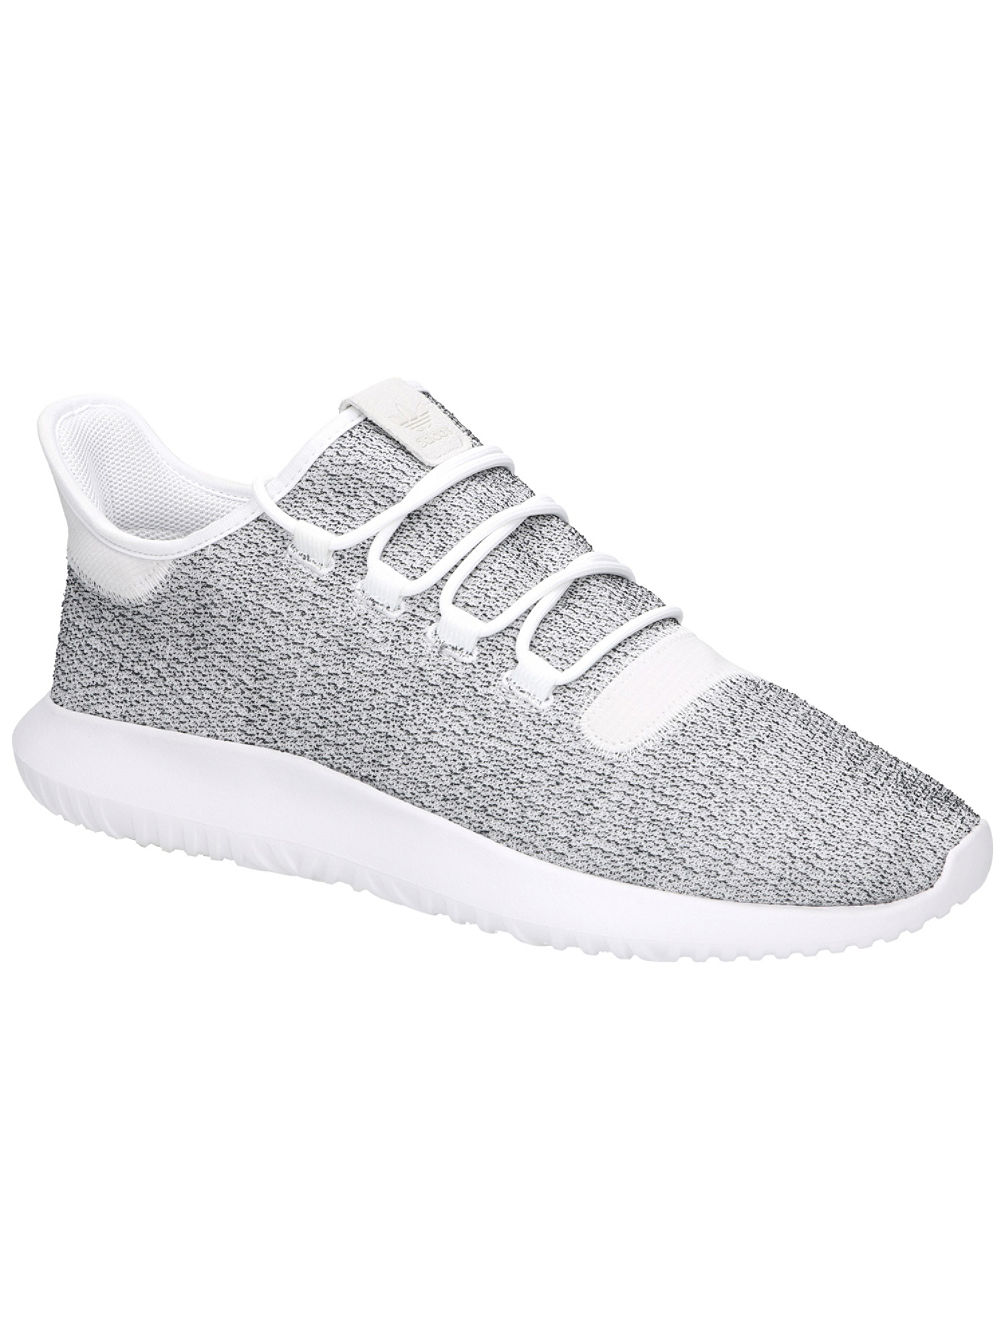 575ebbb5eef Buy adidas Originals Tubular Shadow Sneakers online at blue-tomato.com